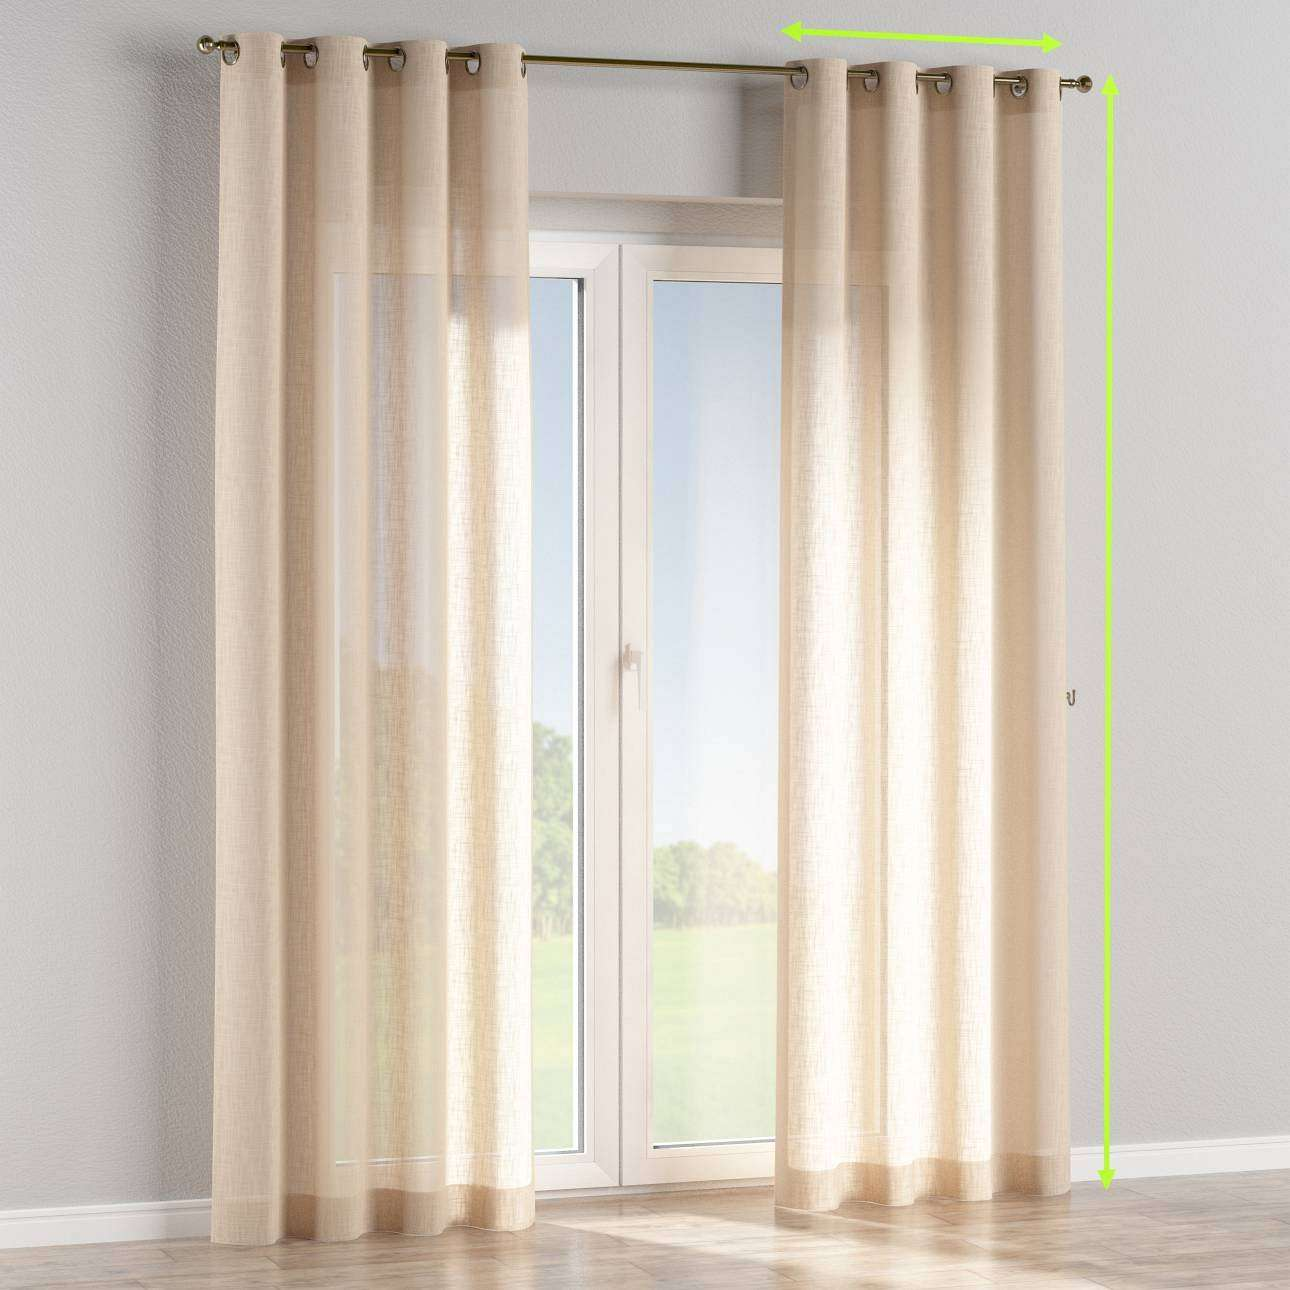 Eyelet curtains in collection Romantica, fabric: 128-01